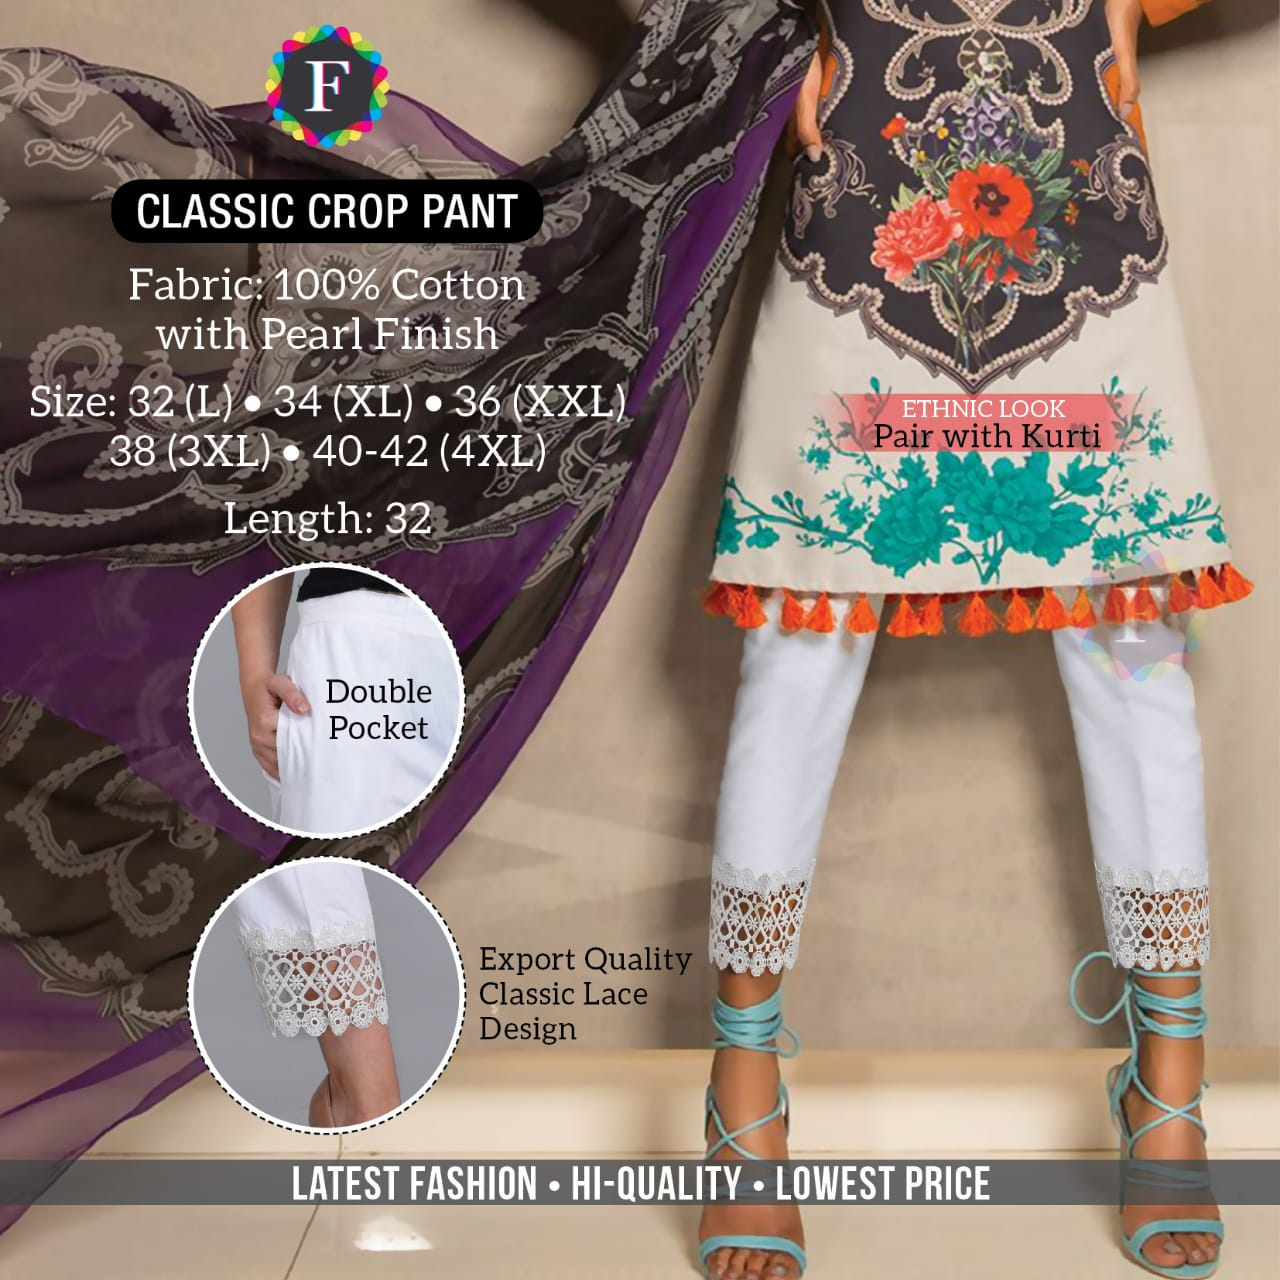 Classic Crop Pant Stylish Fancy Summer Wear Bottom Pant Collection